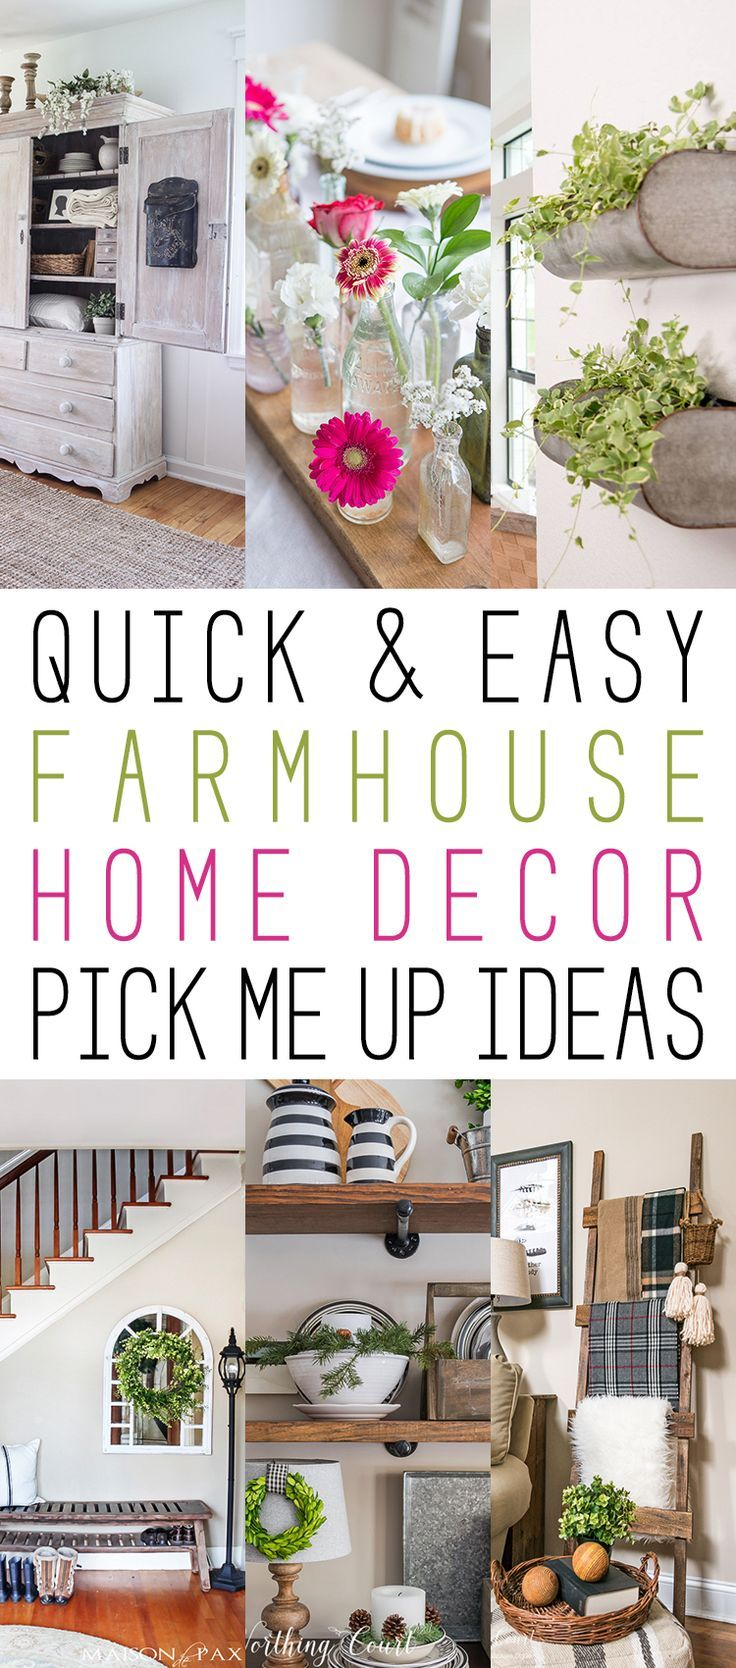 Quick and Easy Farmhouse Home Decor Pick Me Up Ideas | Home - Fixer ...